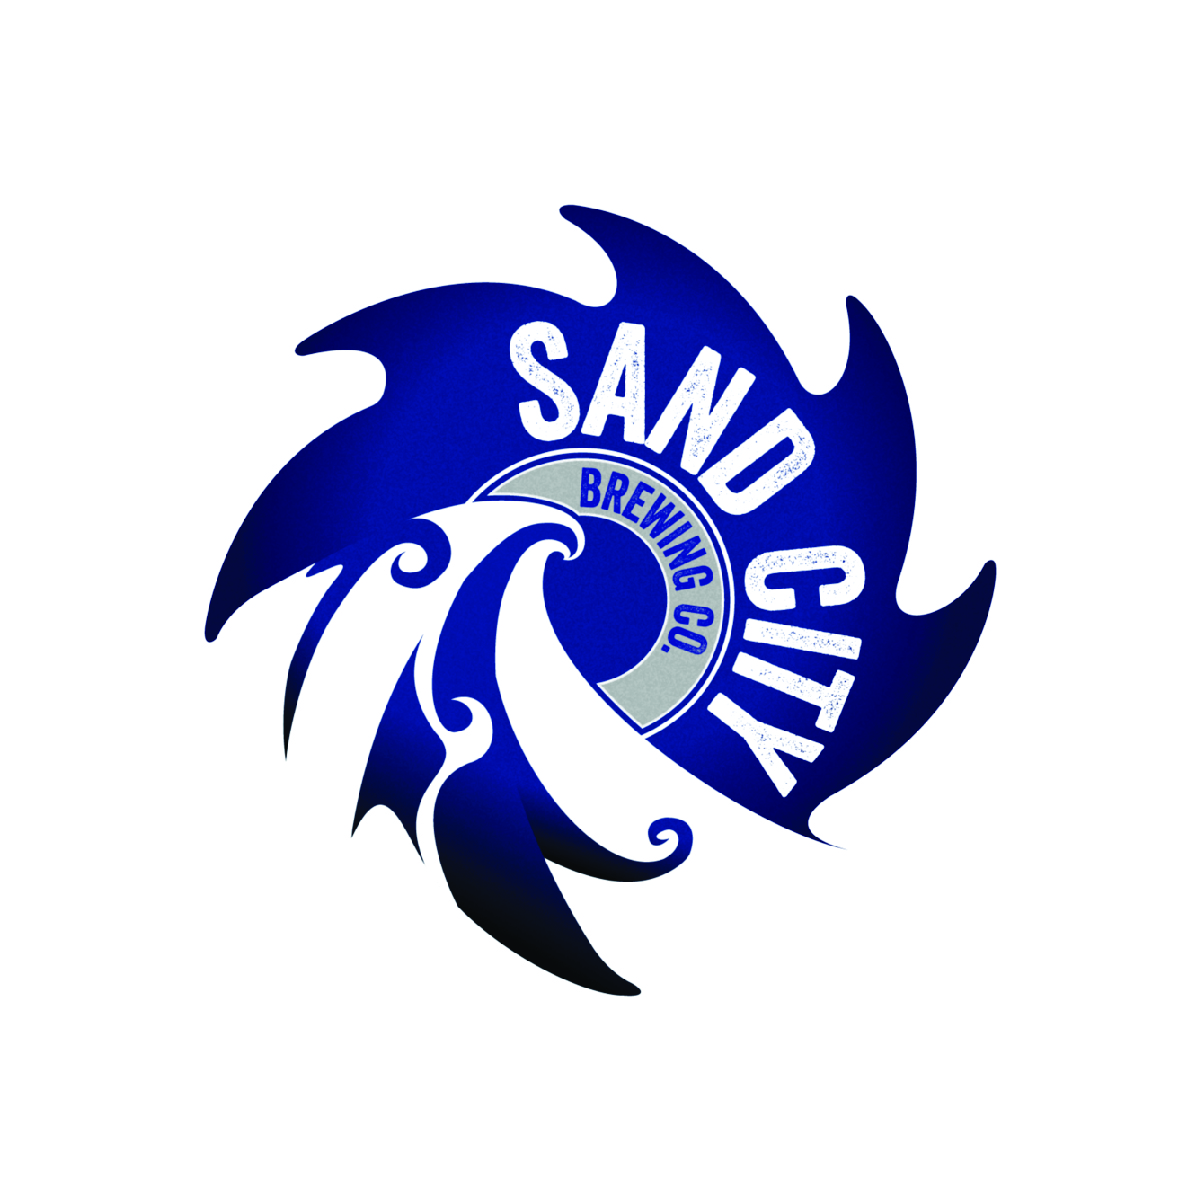 Website_Sandcity-01.jpg